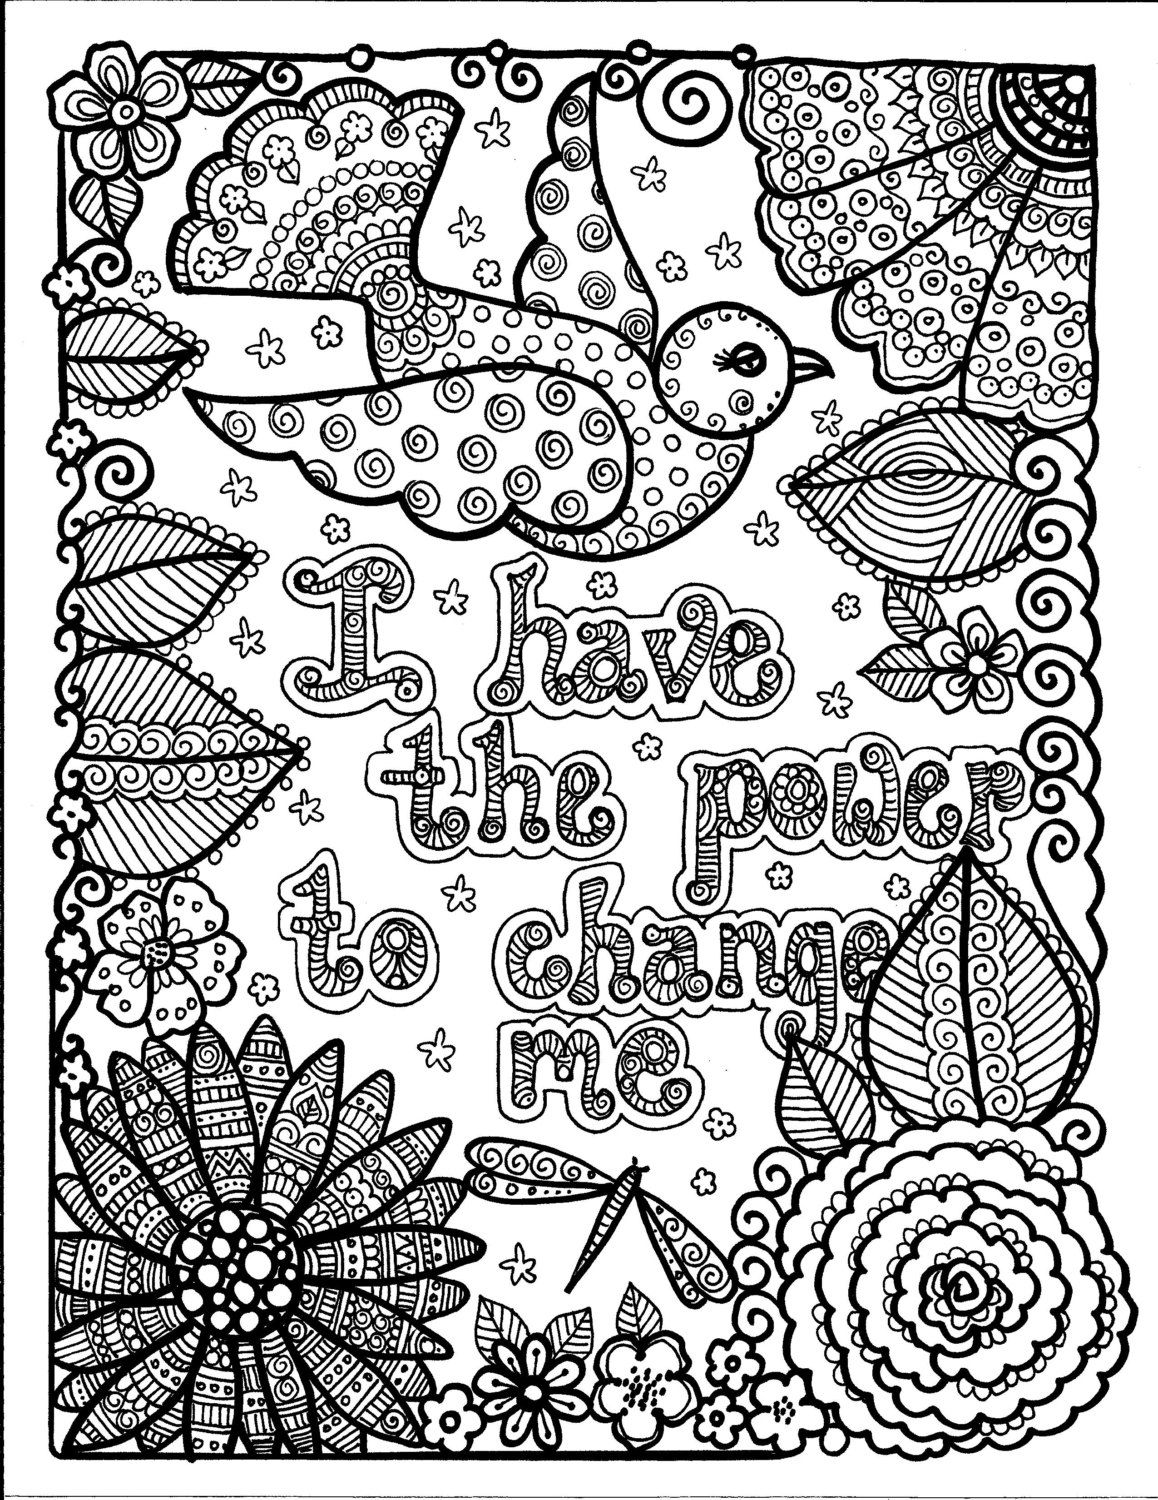 Colorful coloring book for adults download - Instant Download Be Brave Coloring Book By Chubbymermaid On Etsy